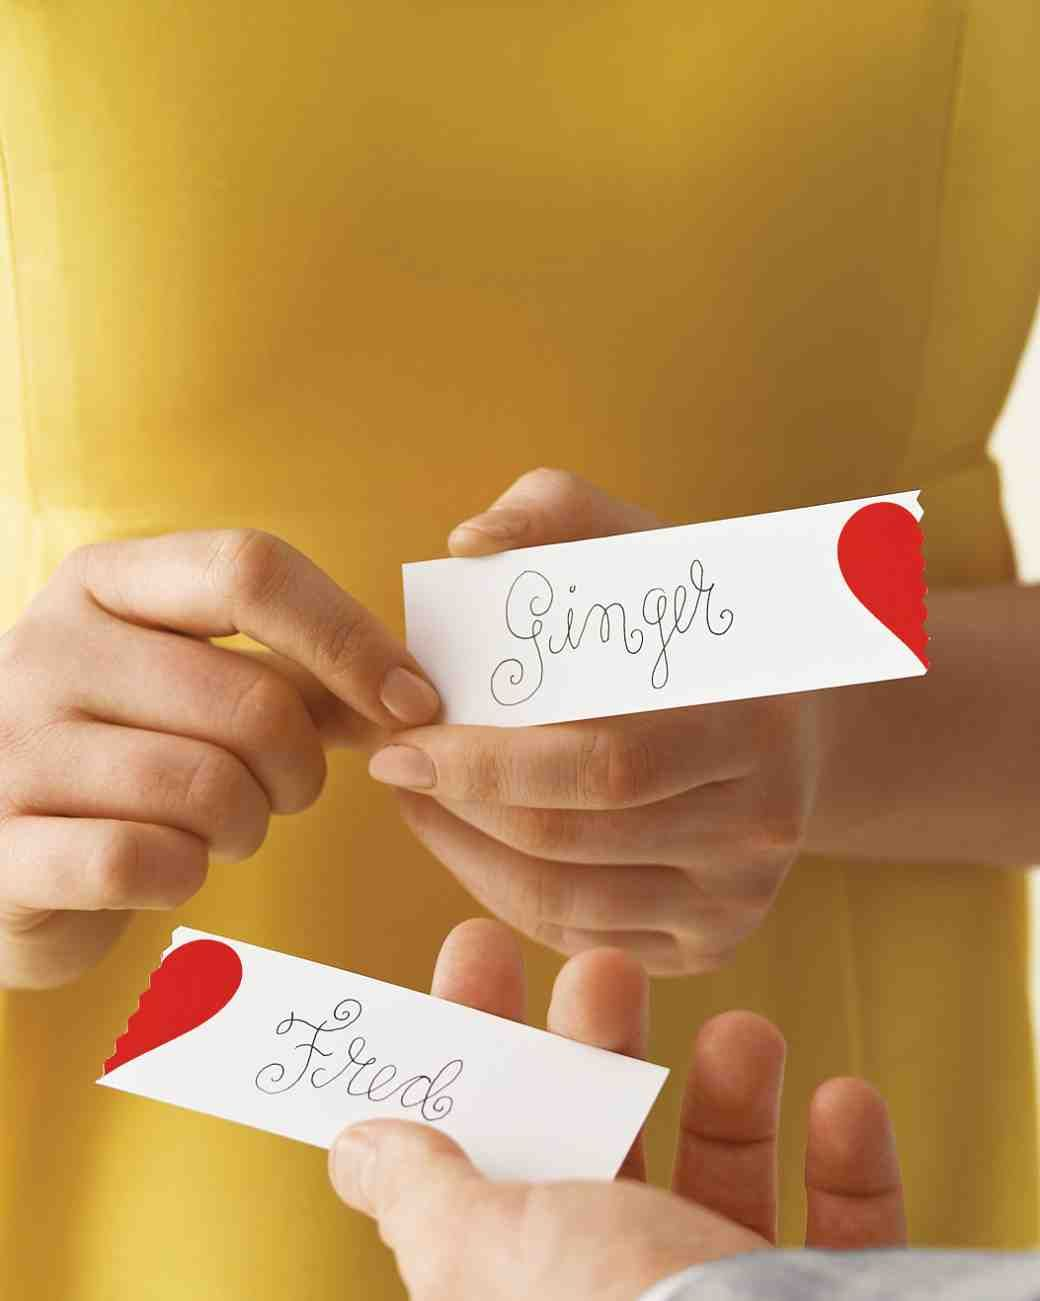 free bridal shower advice card template%0A Bridal Shower Games That Are Actually Fun to Play   Martha Stewart Weddings   In keeping